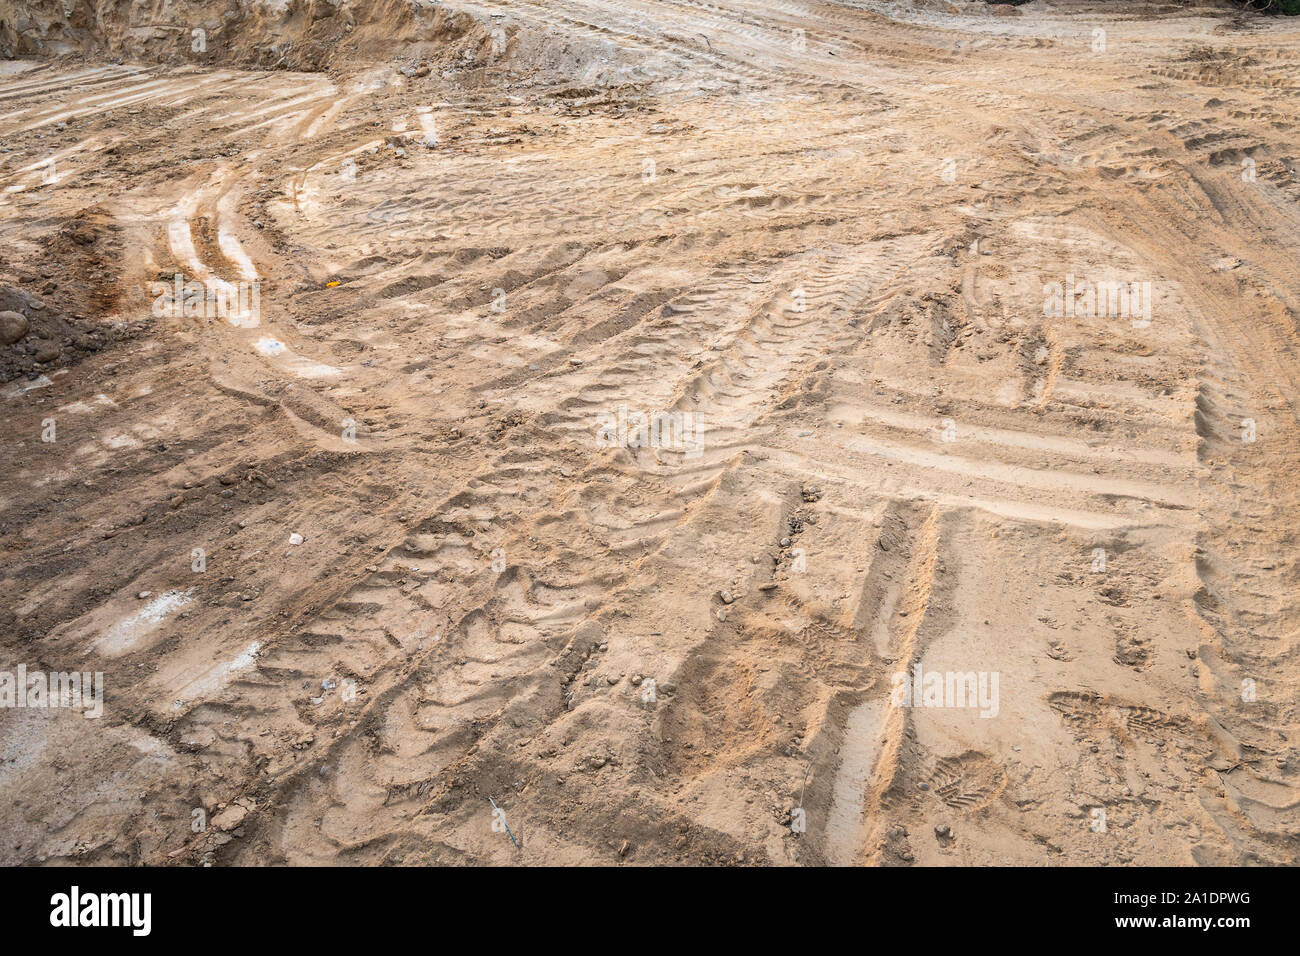 Construction background with dirt soil and tire tracks. Construction Working site Stock Photo